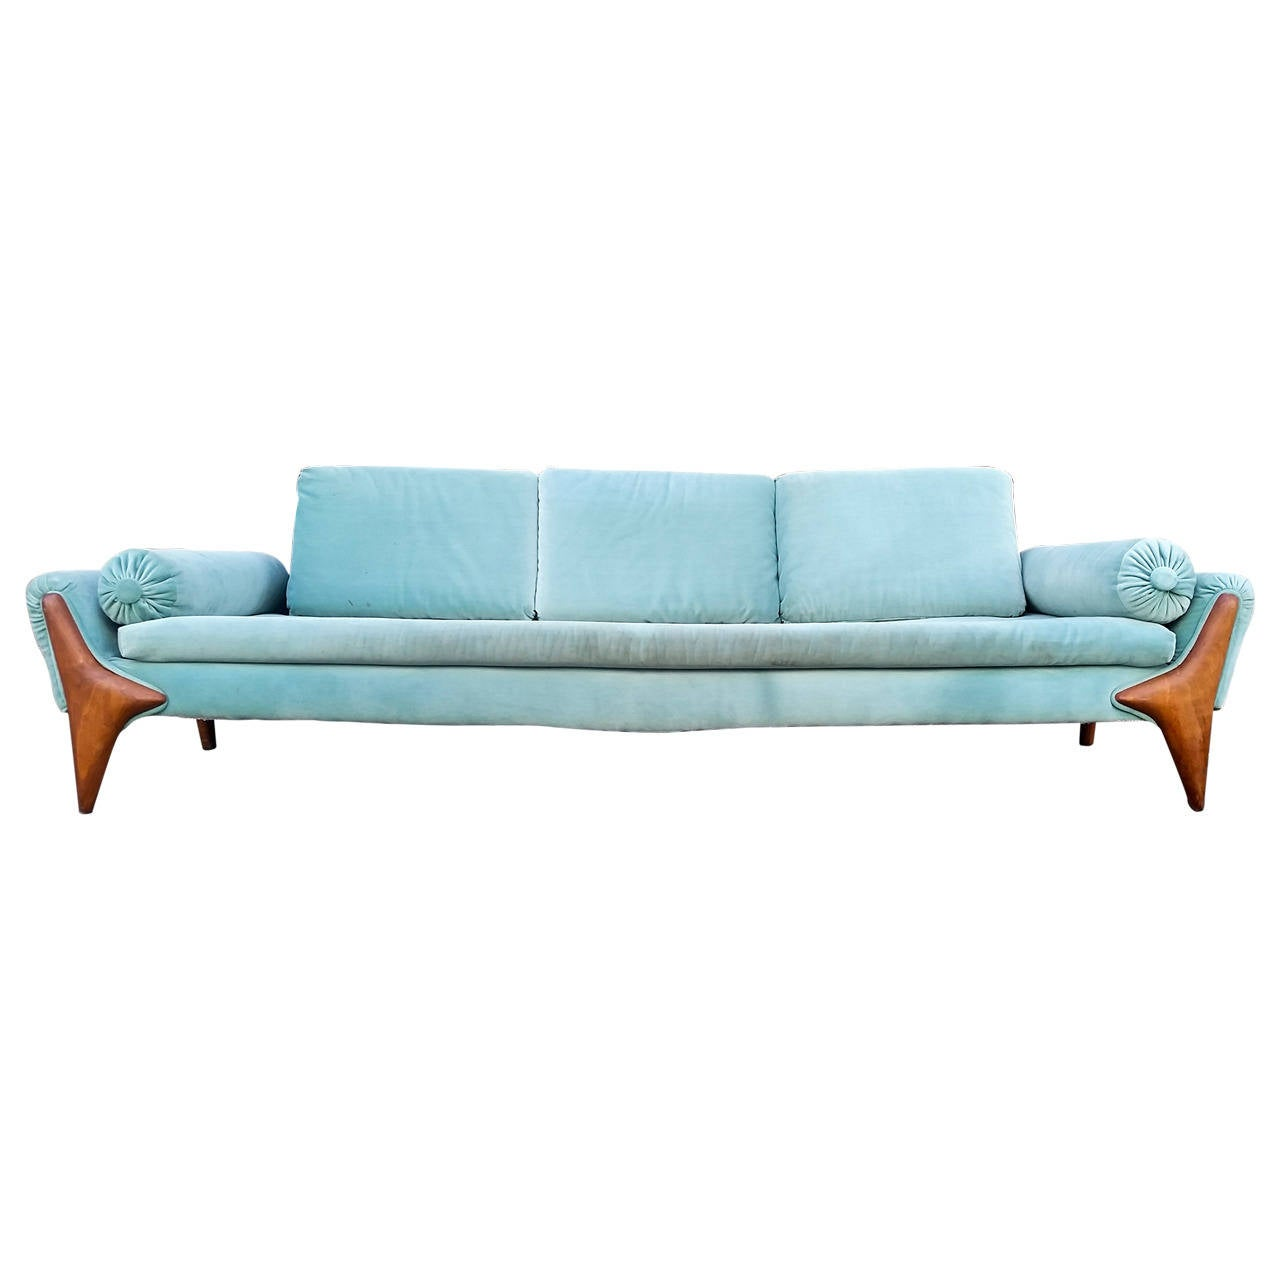 Rare Sculptural Adrian Pearsall Gondola Sofa For Sale